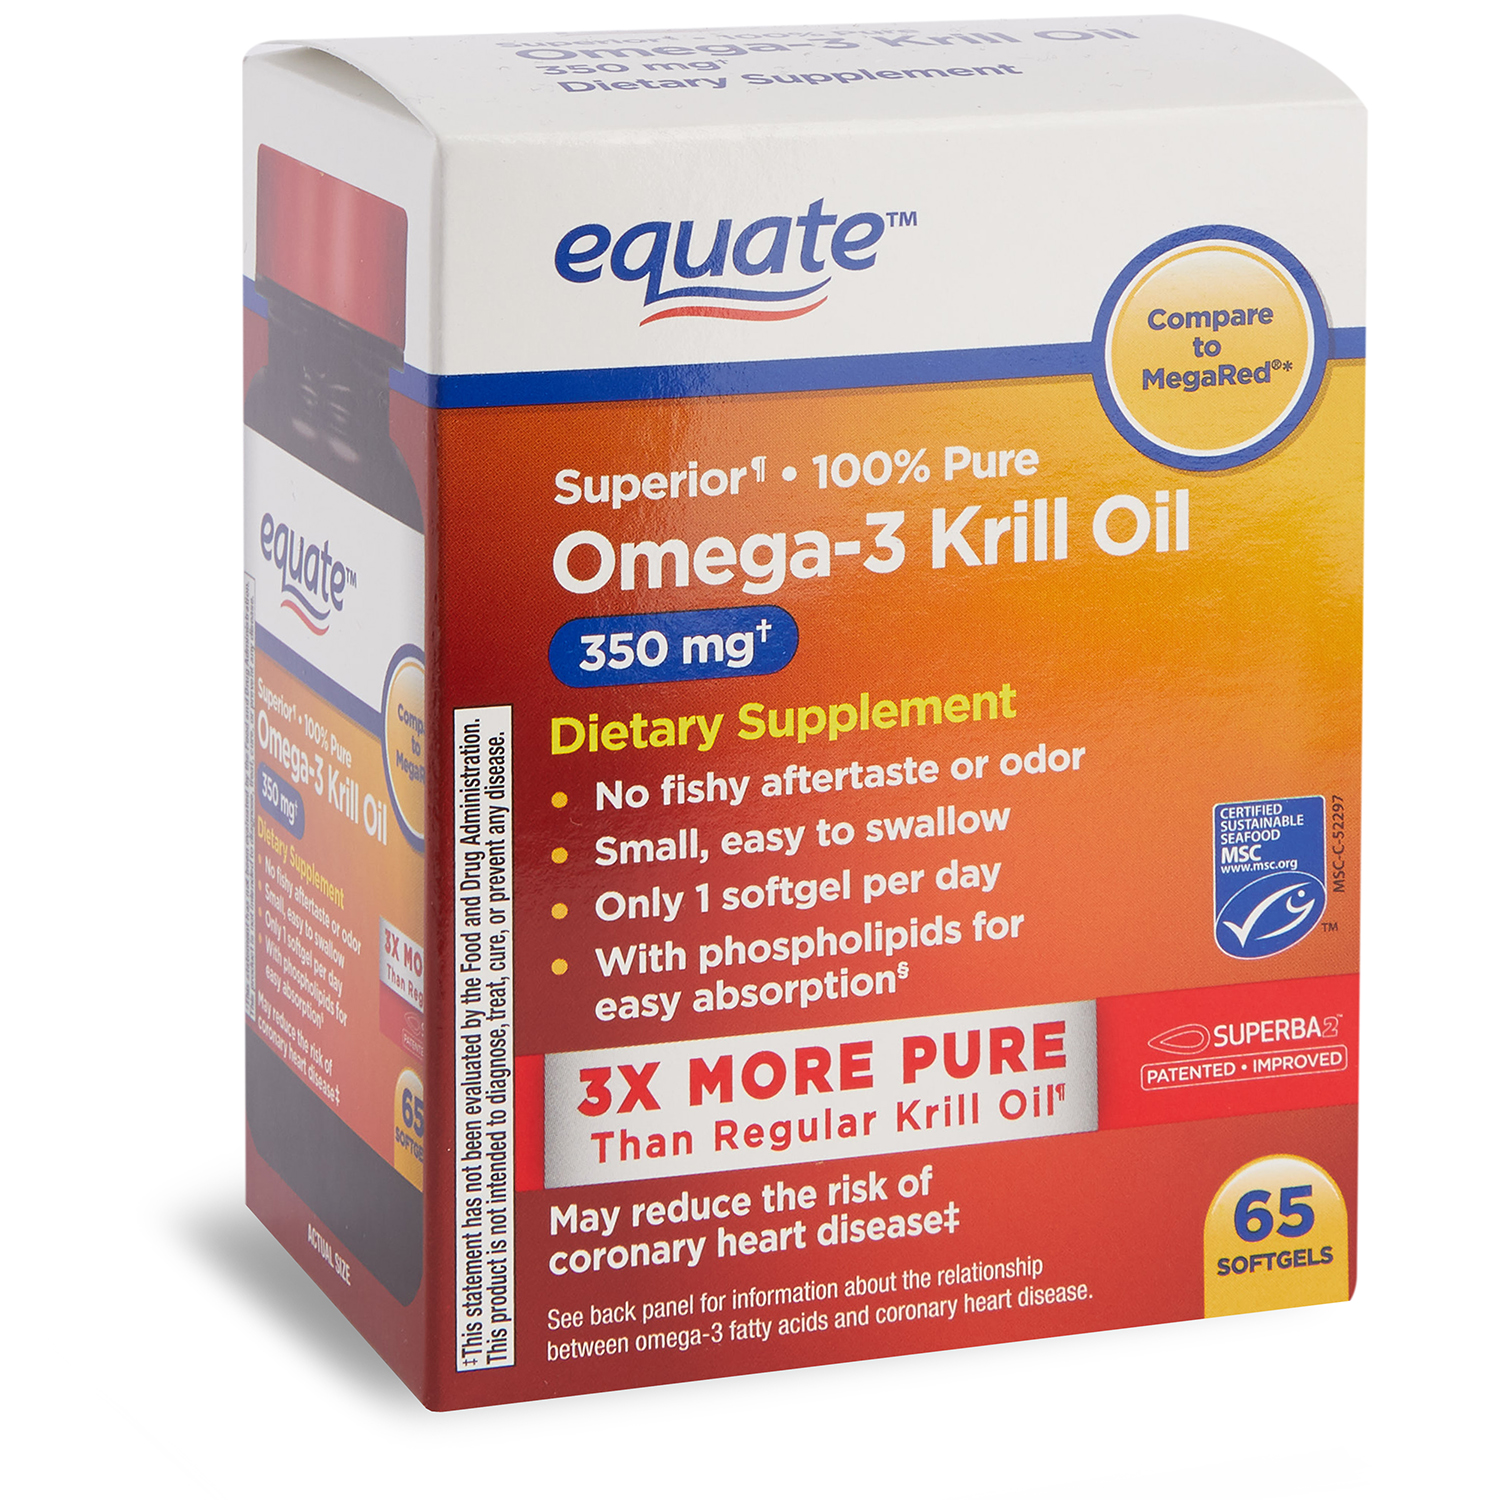 Equate Superior Omega-3 Krill Oil Softgels, 350 Mg, 65 Ct